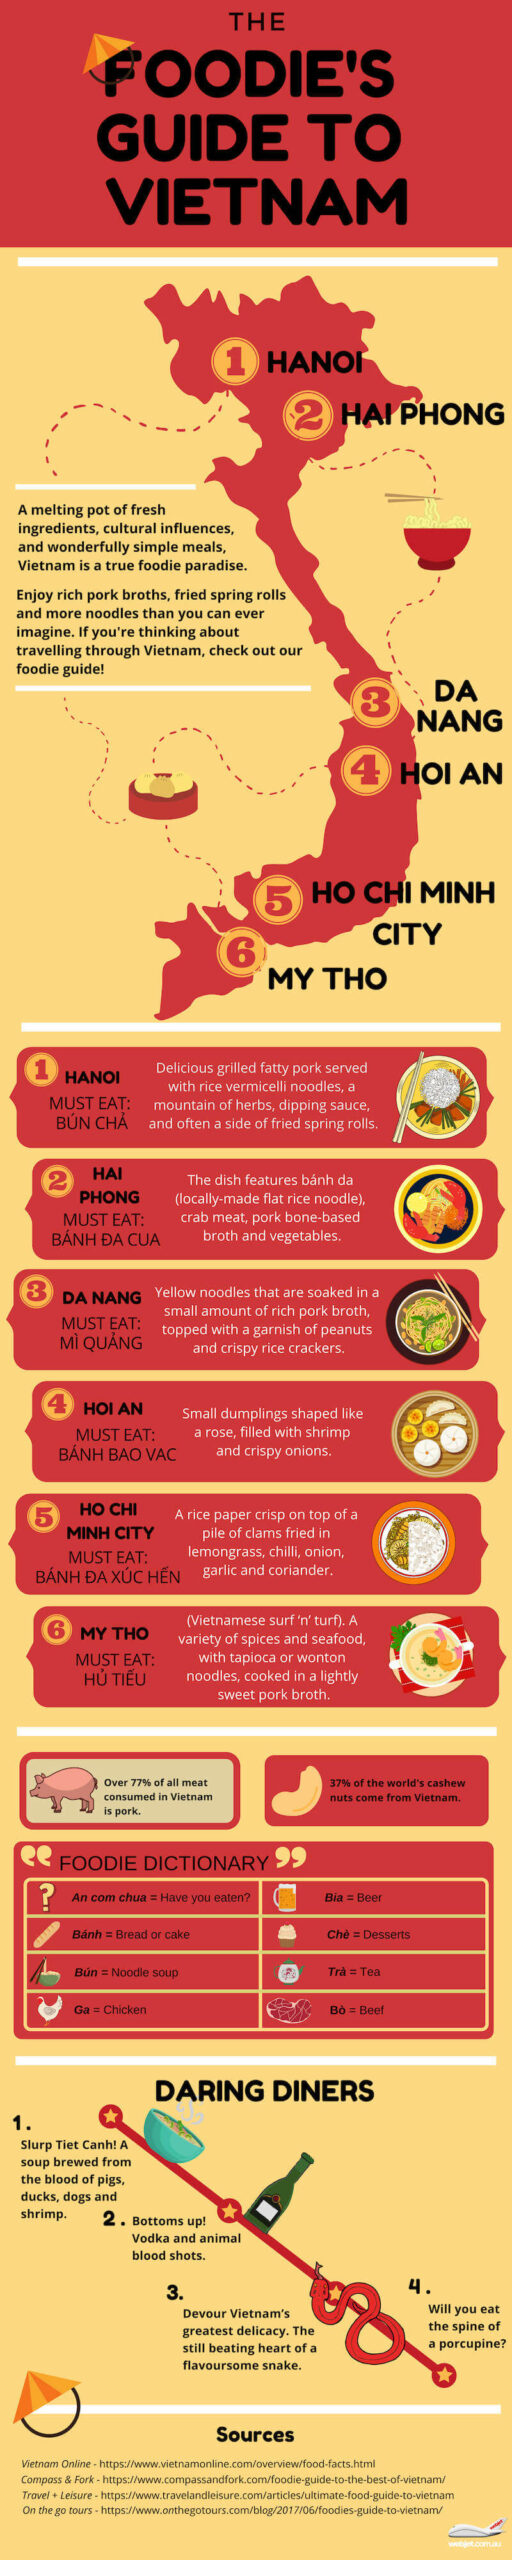 Infographic The Foodie's Guide to Vietnam